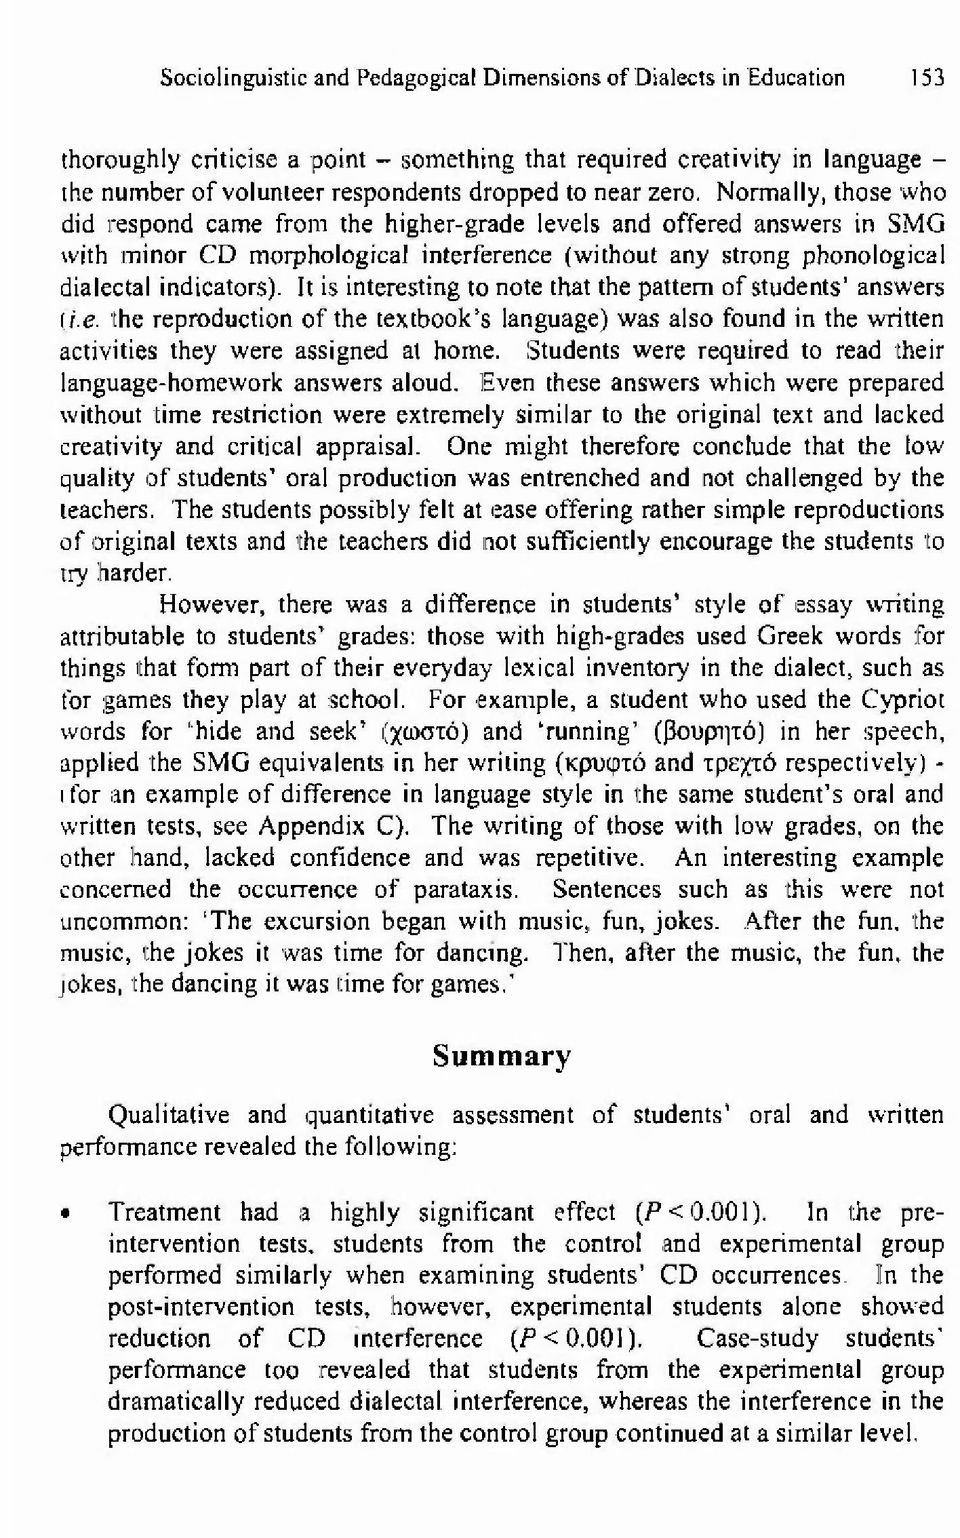 It is interesting to note that the pattern of students' answers l/.e. the reproduction of the textbook's language) was also found in the written activities they were assigned at home.